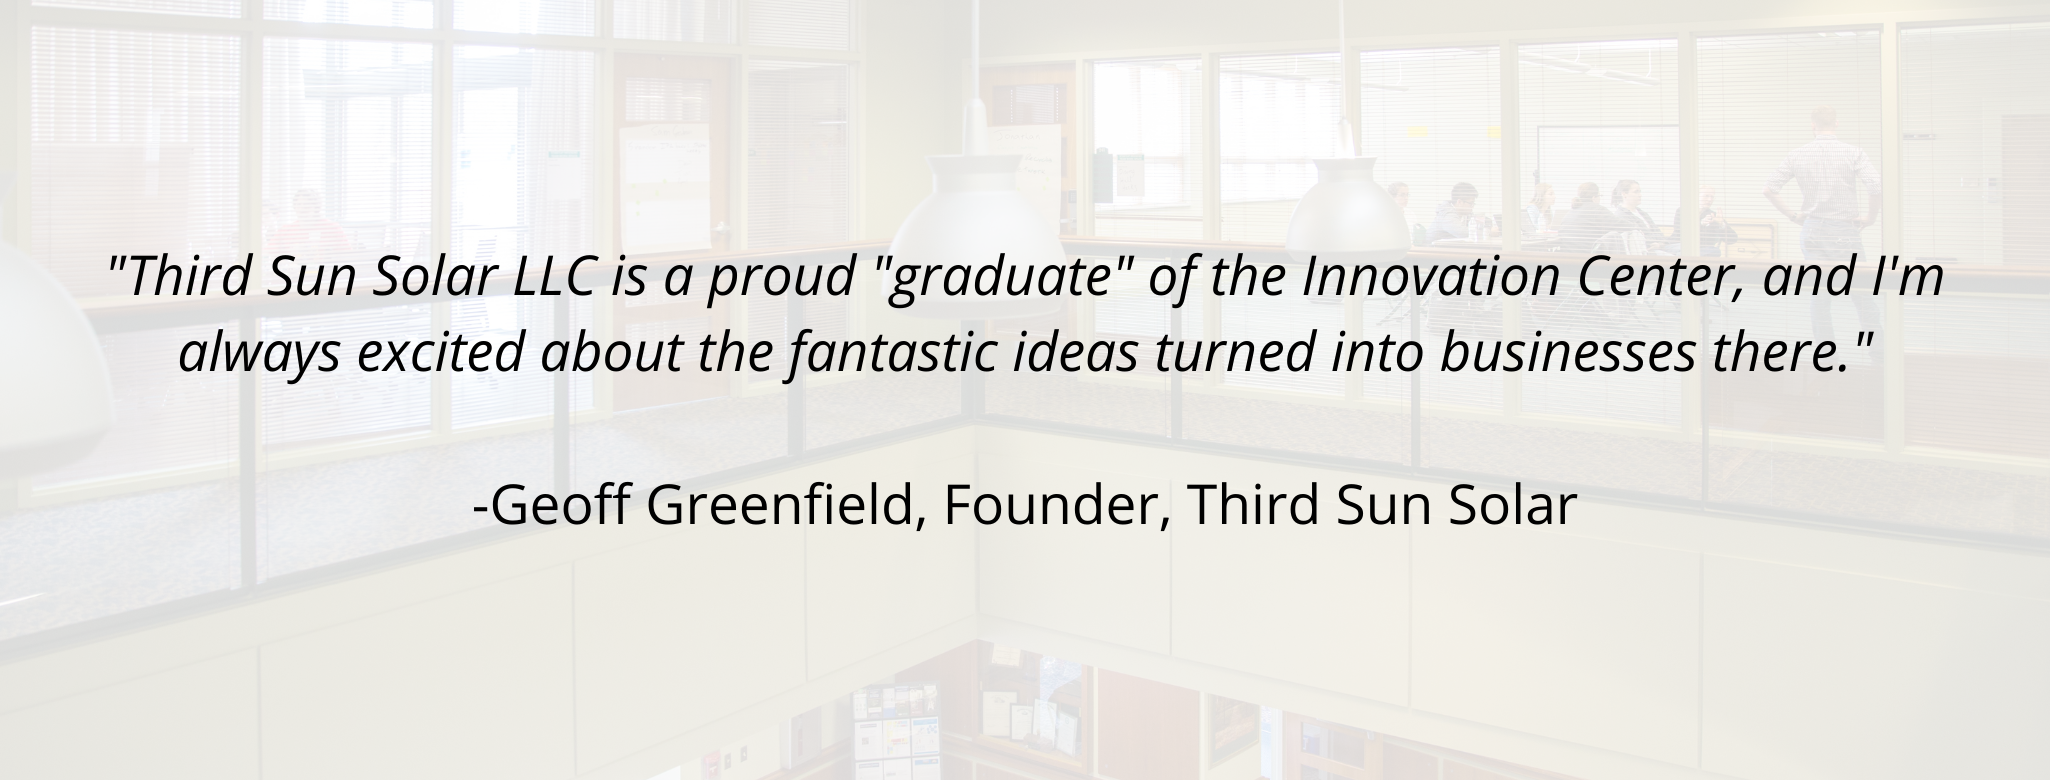 """""""Third Sun Solar LLC is a proud """"graduate"""" of the Innovation Center, and I'm always excited about the fantastic ideas turned into businesses there.""""  Geoff Greenfield, Founder, Third Sun Solar"""